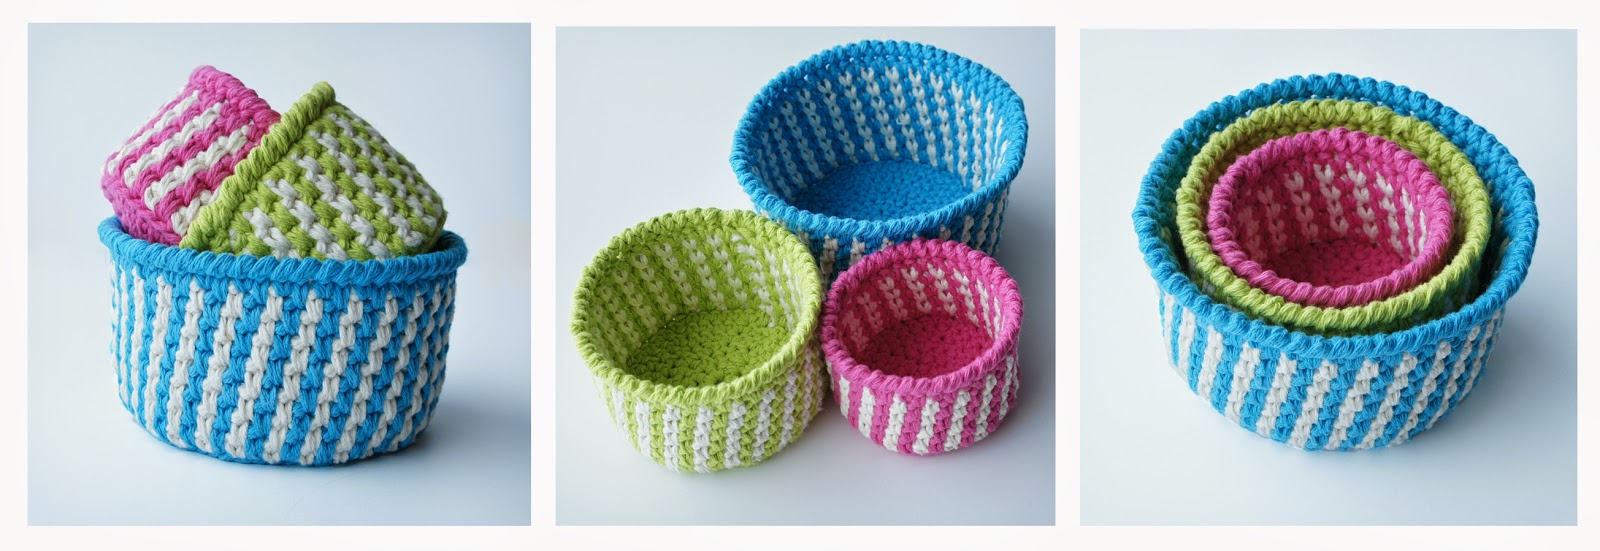 http://www.ravelry.com/patterns/library/striped-baskets